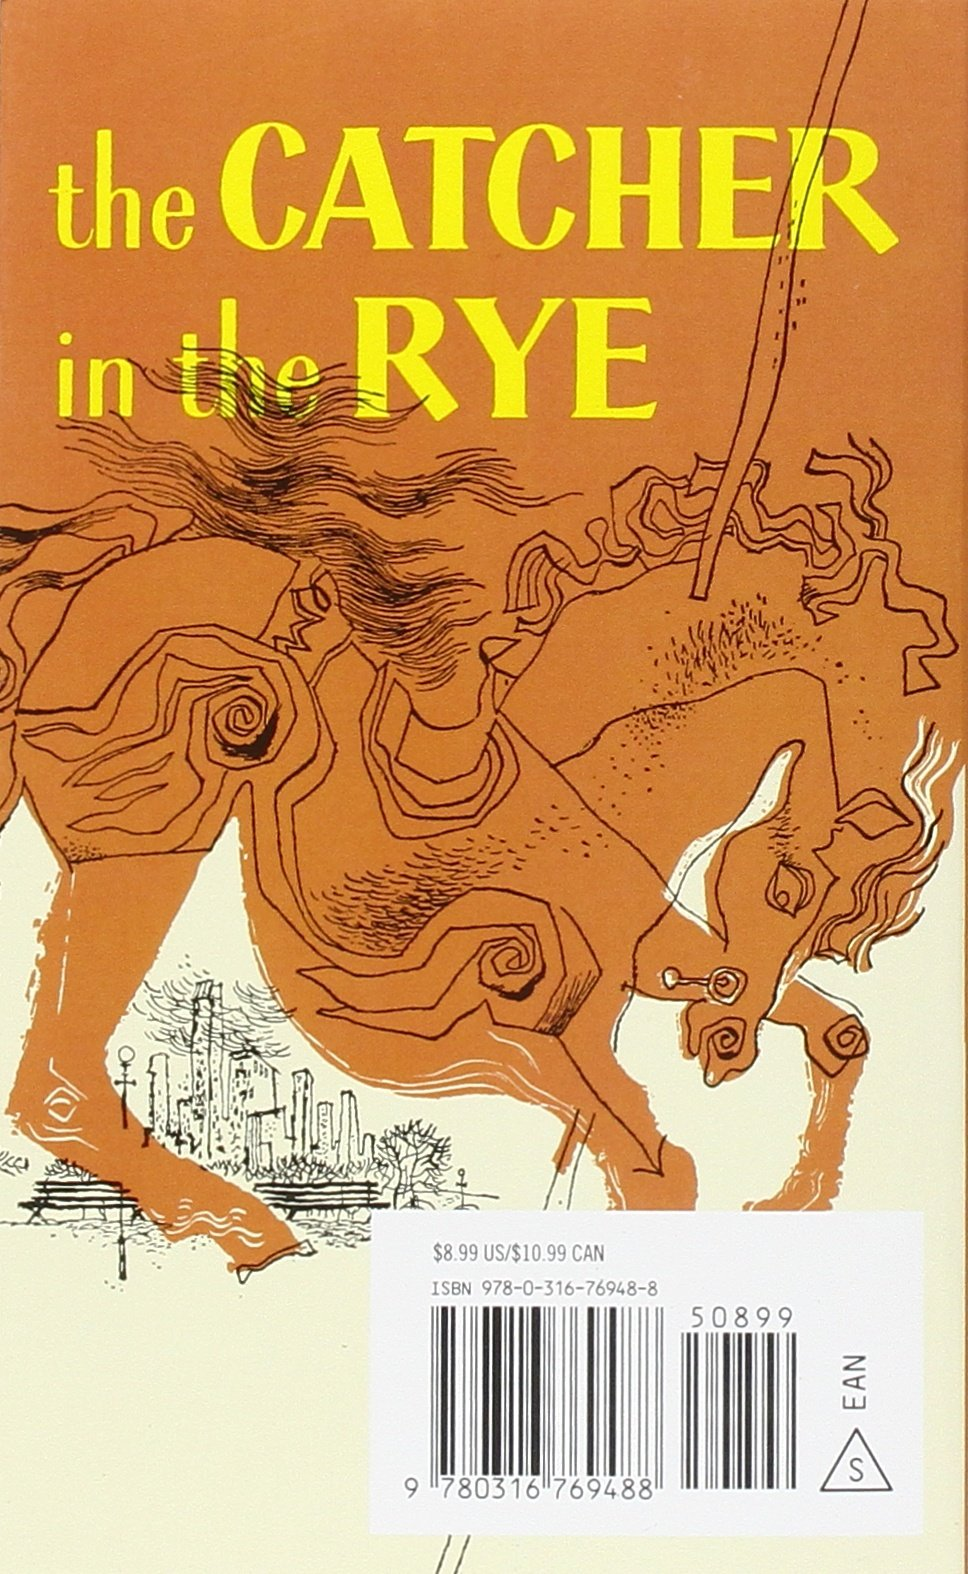 Catcher In The Rye Essays Holden Caulfield Catcher In The Rye  Com The Catcher In The Rye J D Salinger Com The Catcher In The Rye   J D